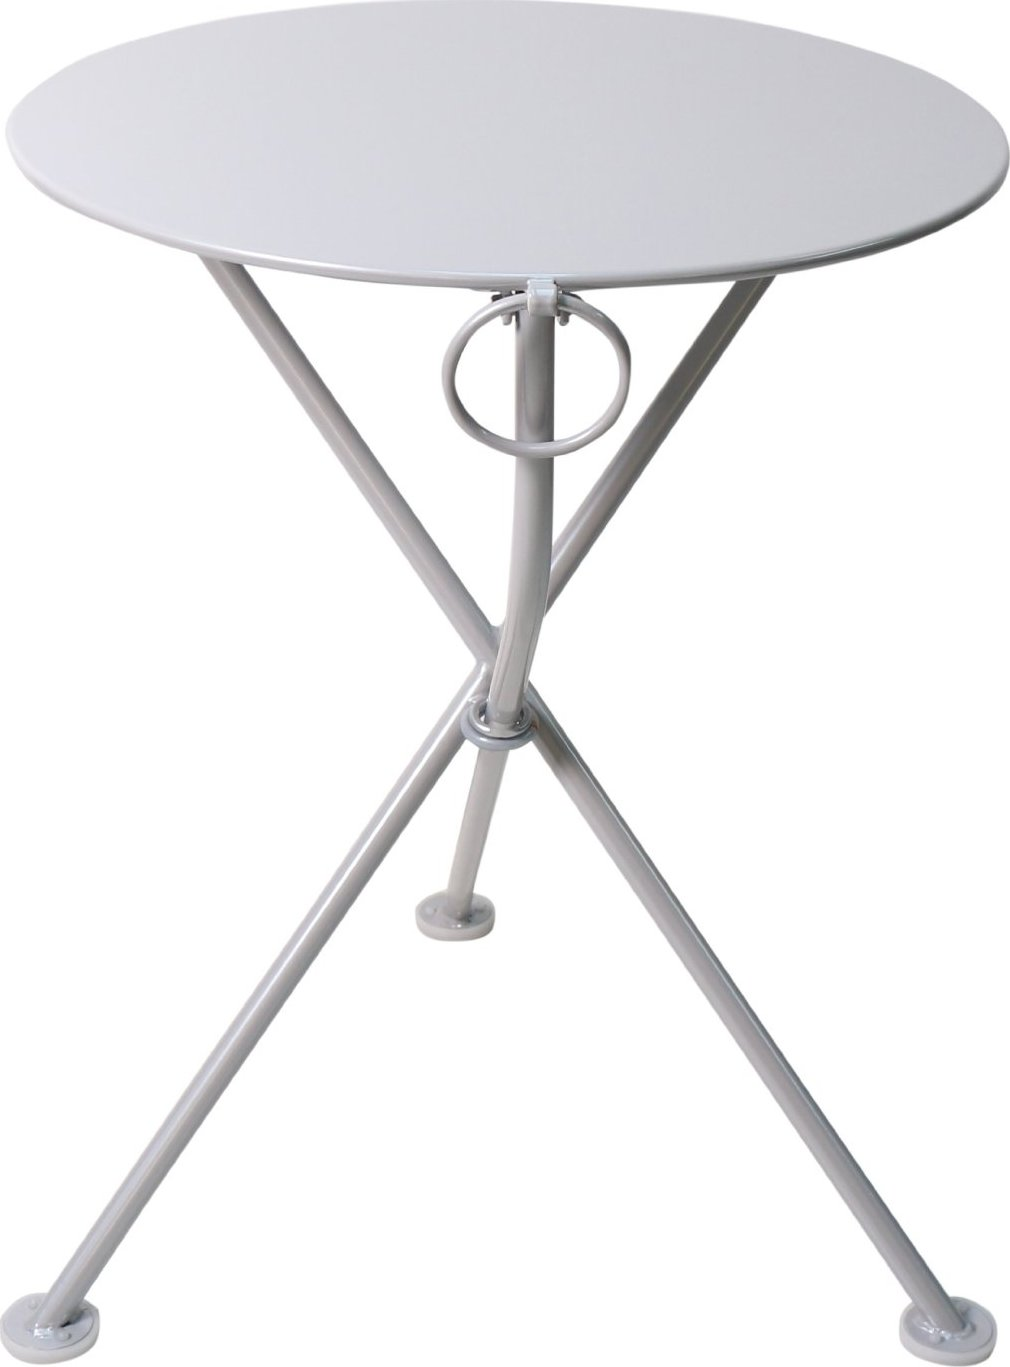 Furniture Designhouse 24 Round Folding Bistro Table